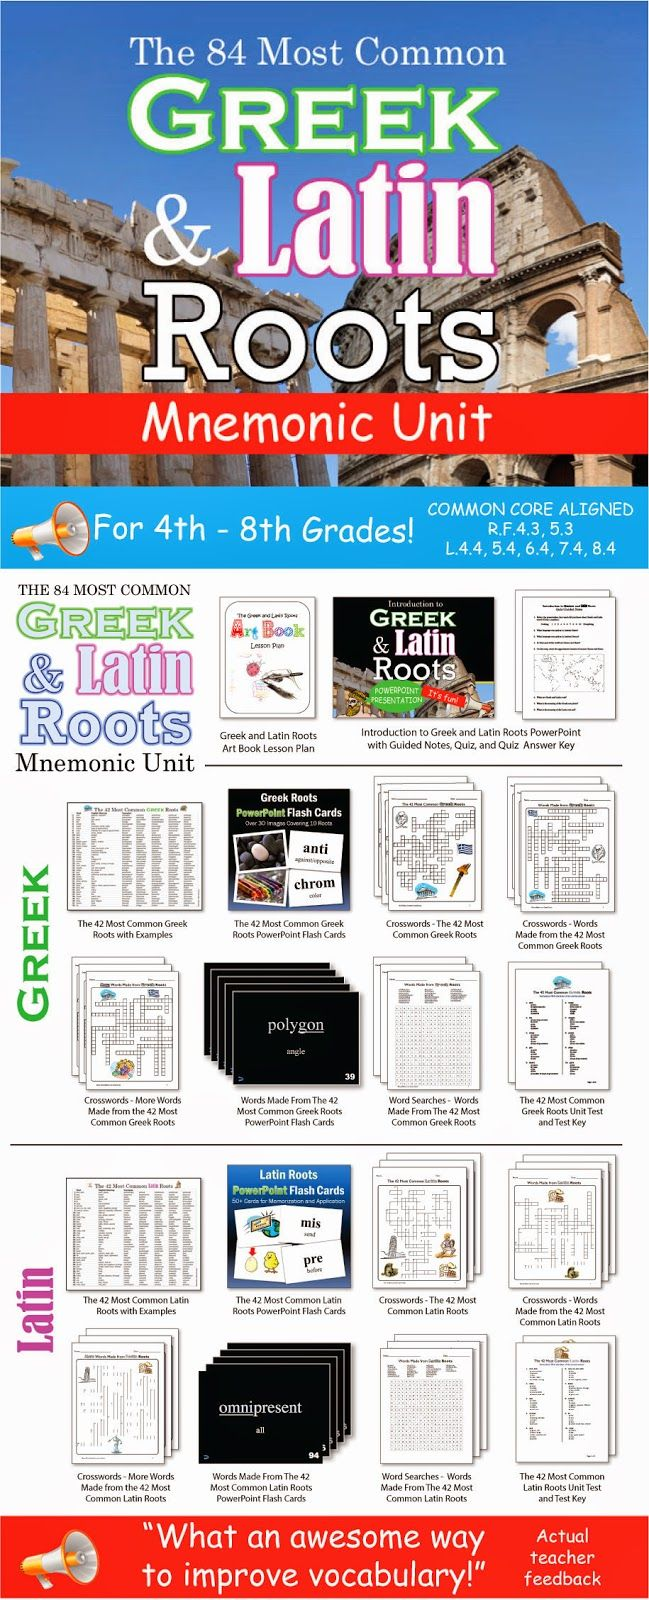 This is a COMPLETE mnemonic unit on eighty-four Greek and Latin roots that are the building blocks of thousands of English words. By the time your students are finished with this unit, they will have memorized the meanings of these eighty-four common Greek and Latin roots. As a result, they will be able to figure out the meaning of thousands of English words. I made it about five years ago for 8th graders. Been using it ever since for a variety of grade levels!